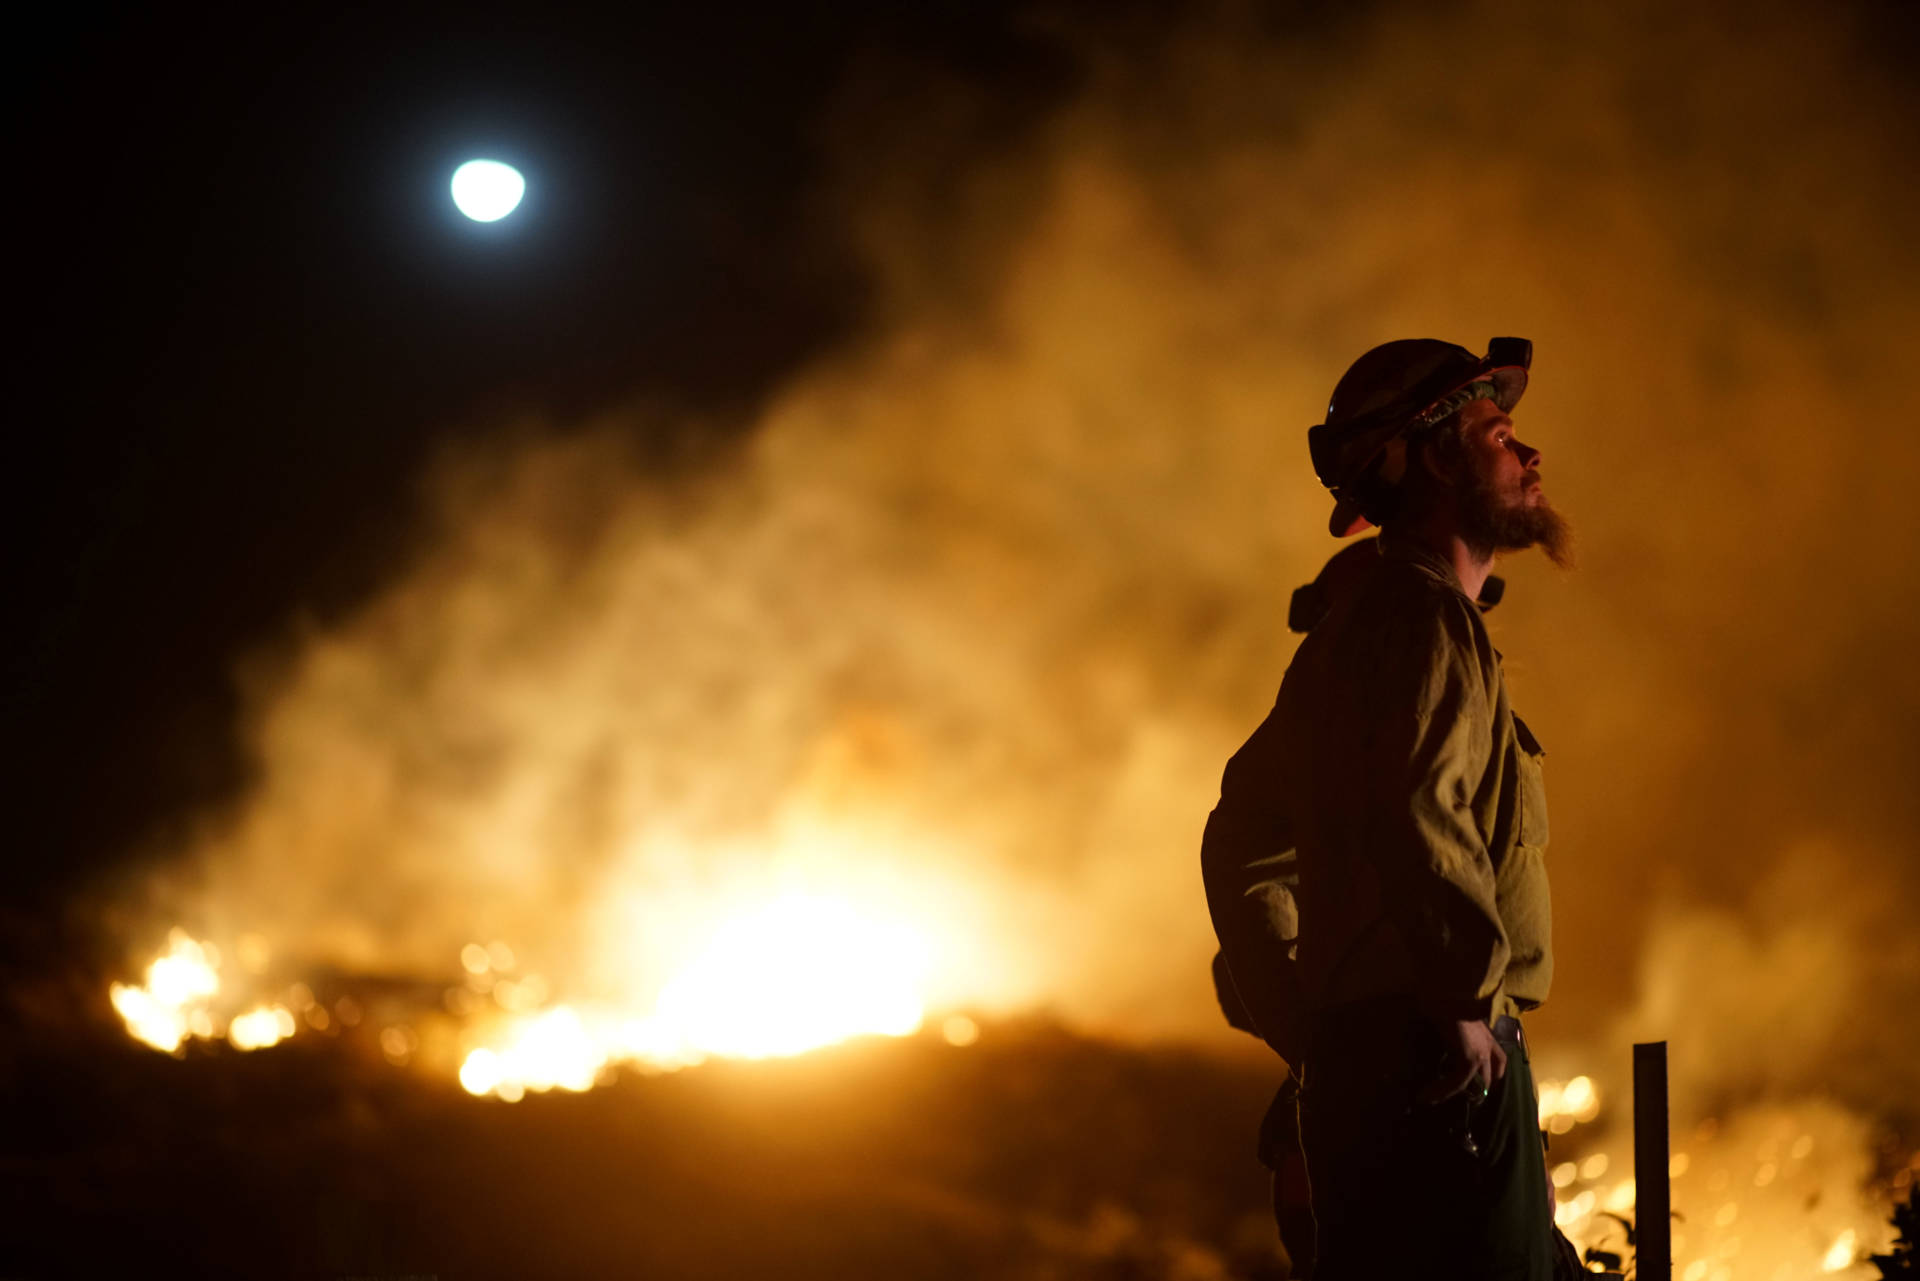 A firefighter watches the fire line at the Lilac fire in Bonsall, California on Dec. 7, 2017. Local emergency officials warned of powerful winds on Dec. 7 that will feed wildfires raging in Los Angeles, threatening multi-million dollar mansions with blazes that have already forced more than 200,000 people to flee. Sandy Huffaker/AFP/Getty Images